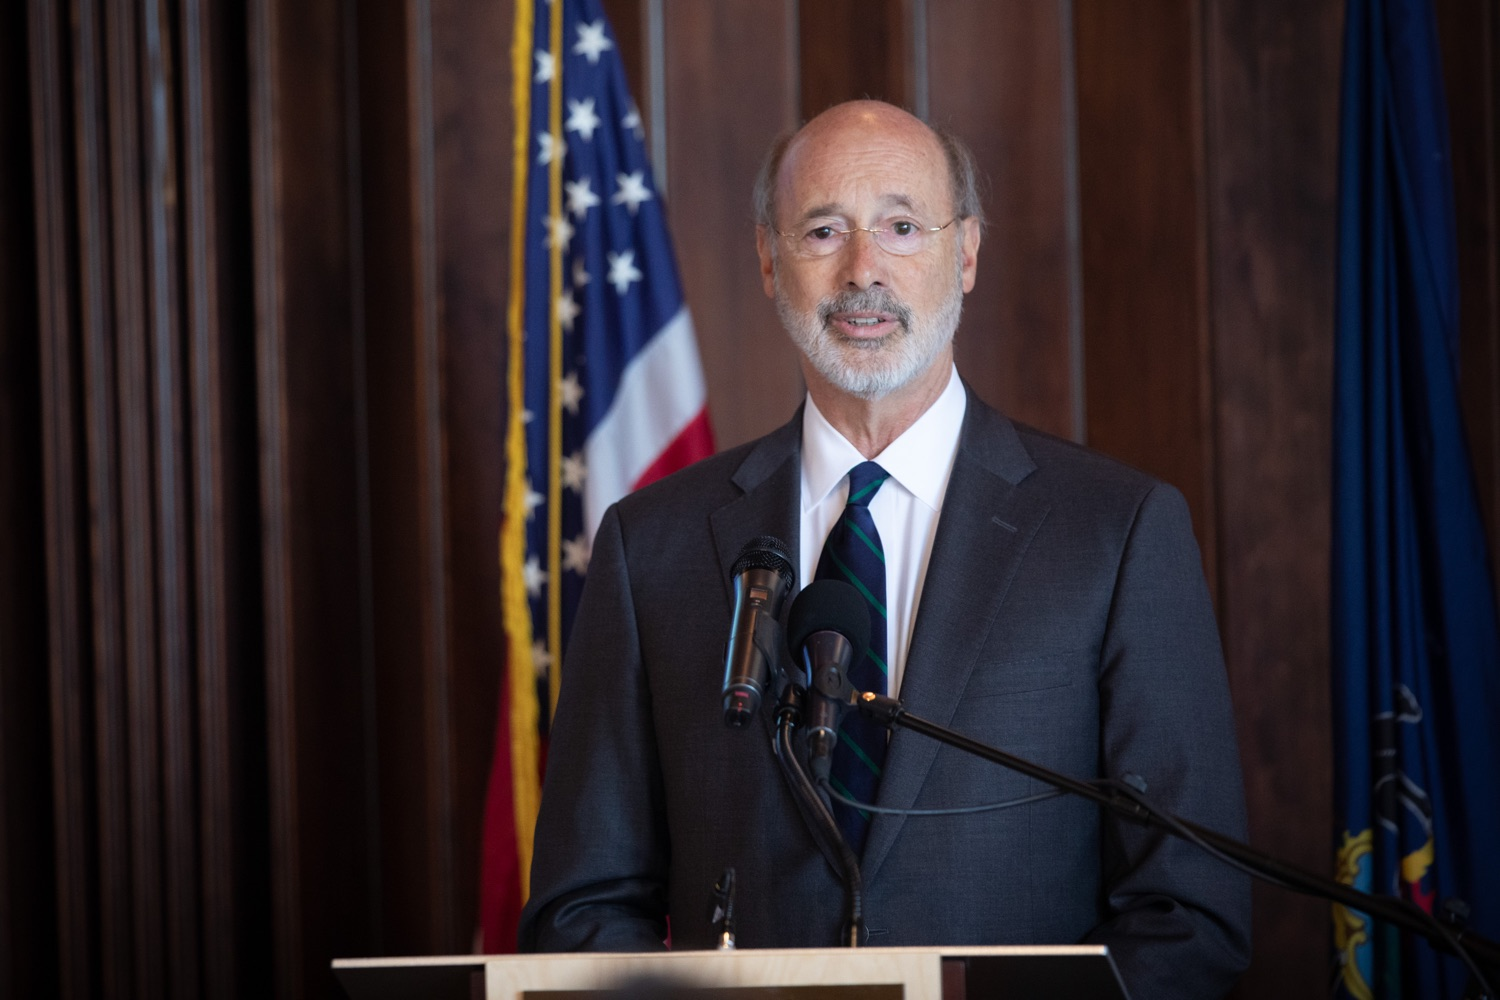 """<a href=""""http://filesource.abacast.com/commonwealthofpa/photo/17467_gov_opioids_dz_012.JPG"""" target=""""_blank"""">⇣Download Photo<br></a>Boalsburg, PA  Governor Tom Wolf addressing the summit. Governor Tom Wolf today kicked off his administrations first Opioid Command Center Opioid Summit: Think Globally, Act Locally, which brought together 200 individuals helping their communities fight the opioid crisis, including community organizations, non-profits, schools, health care workers, addiction and recovery specialists, and families affected by the opioid crisis.  Tuesday, October 1, 2019"""